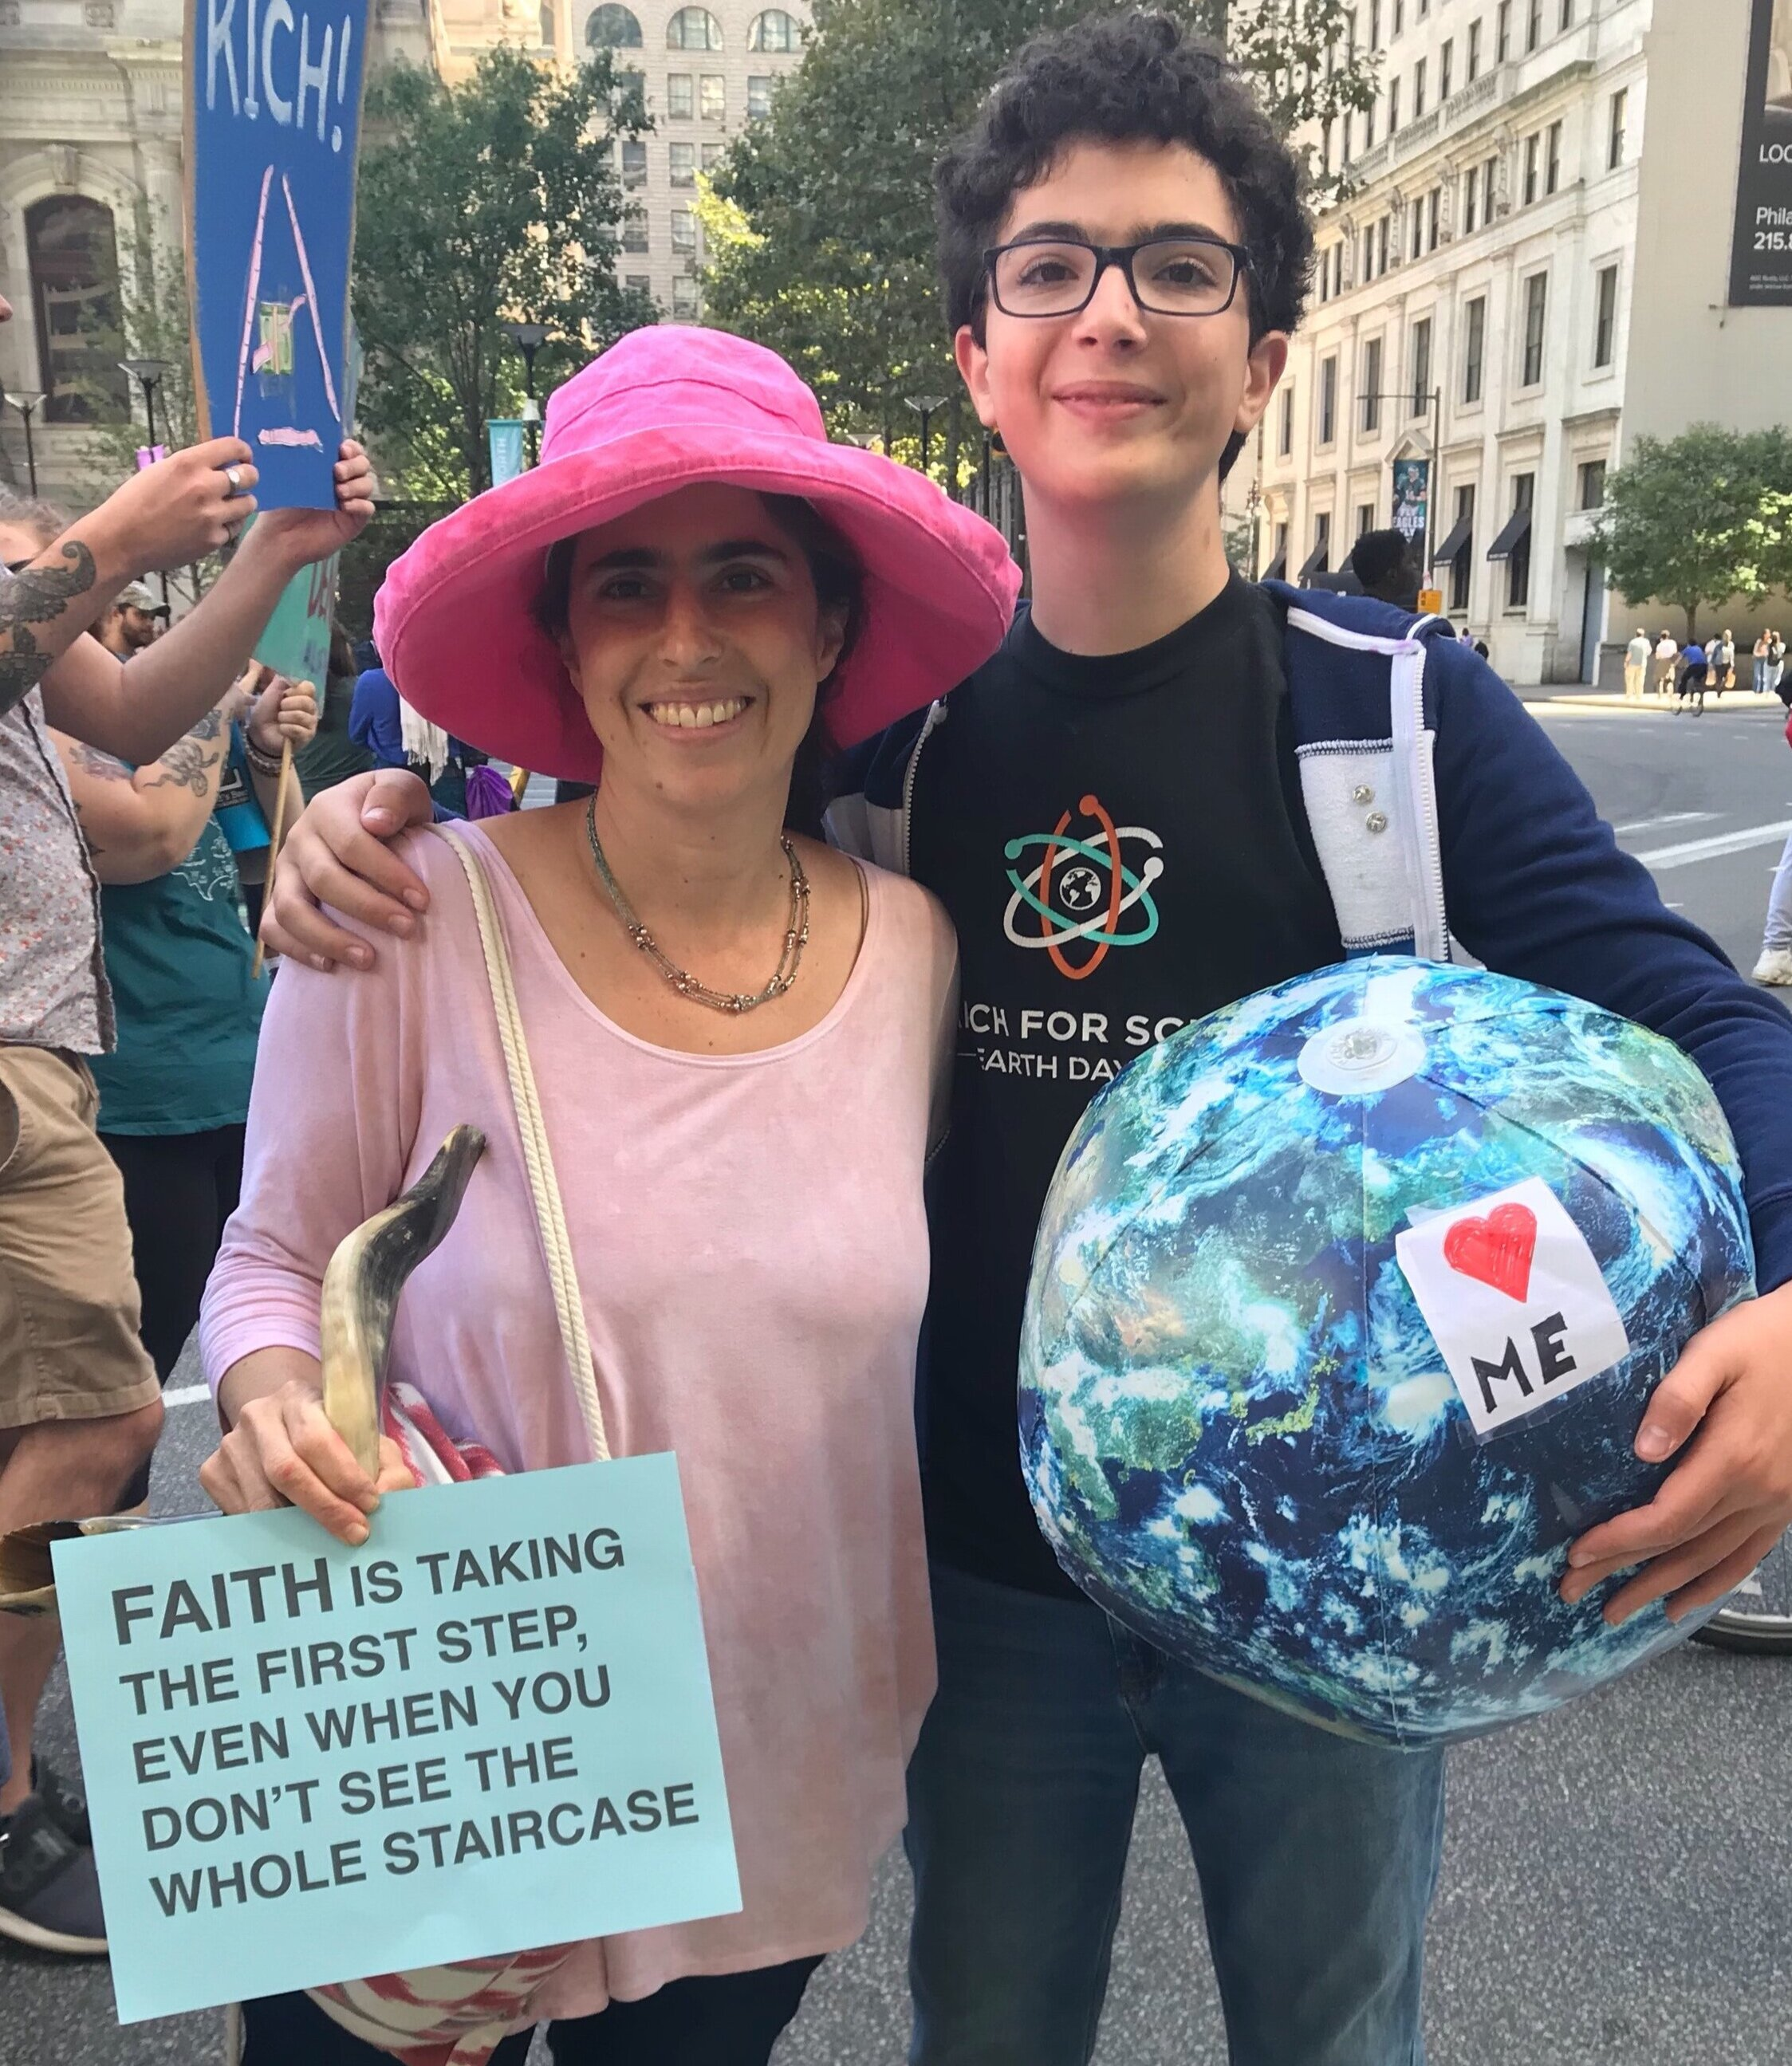 With my son Tani at the September 20 Youth Climate Strike by City Hall in Philadelphia.